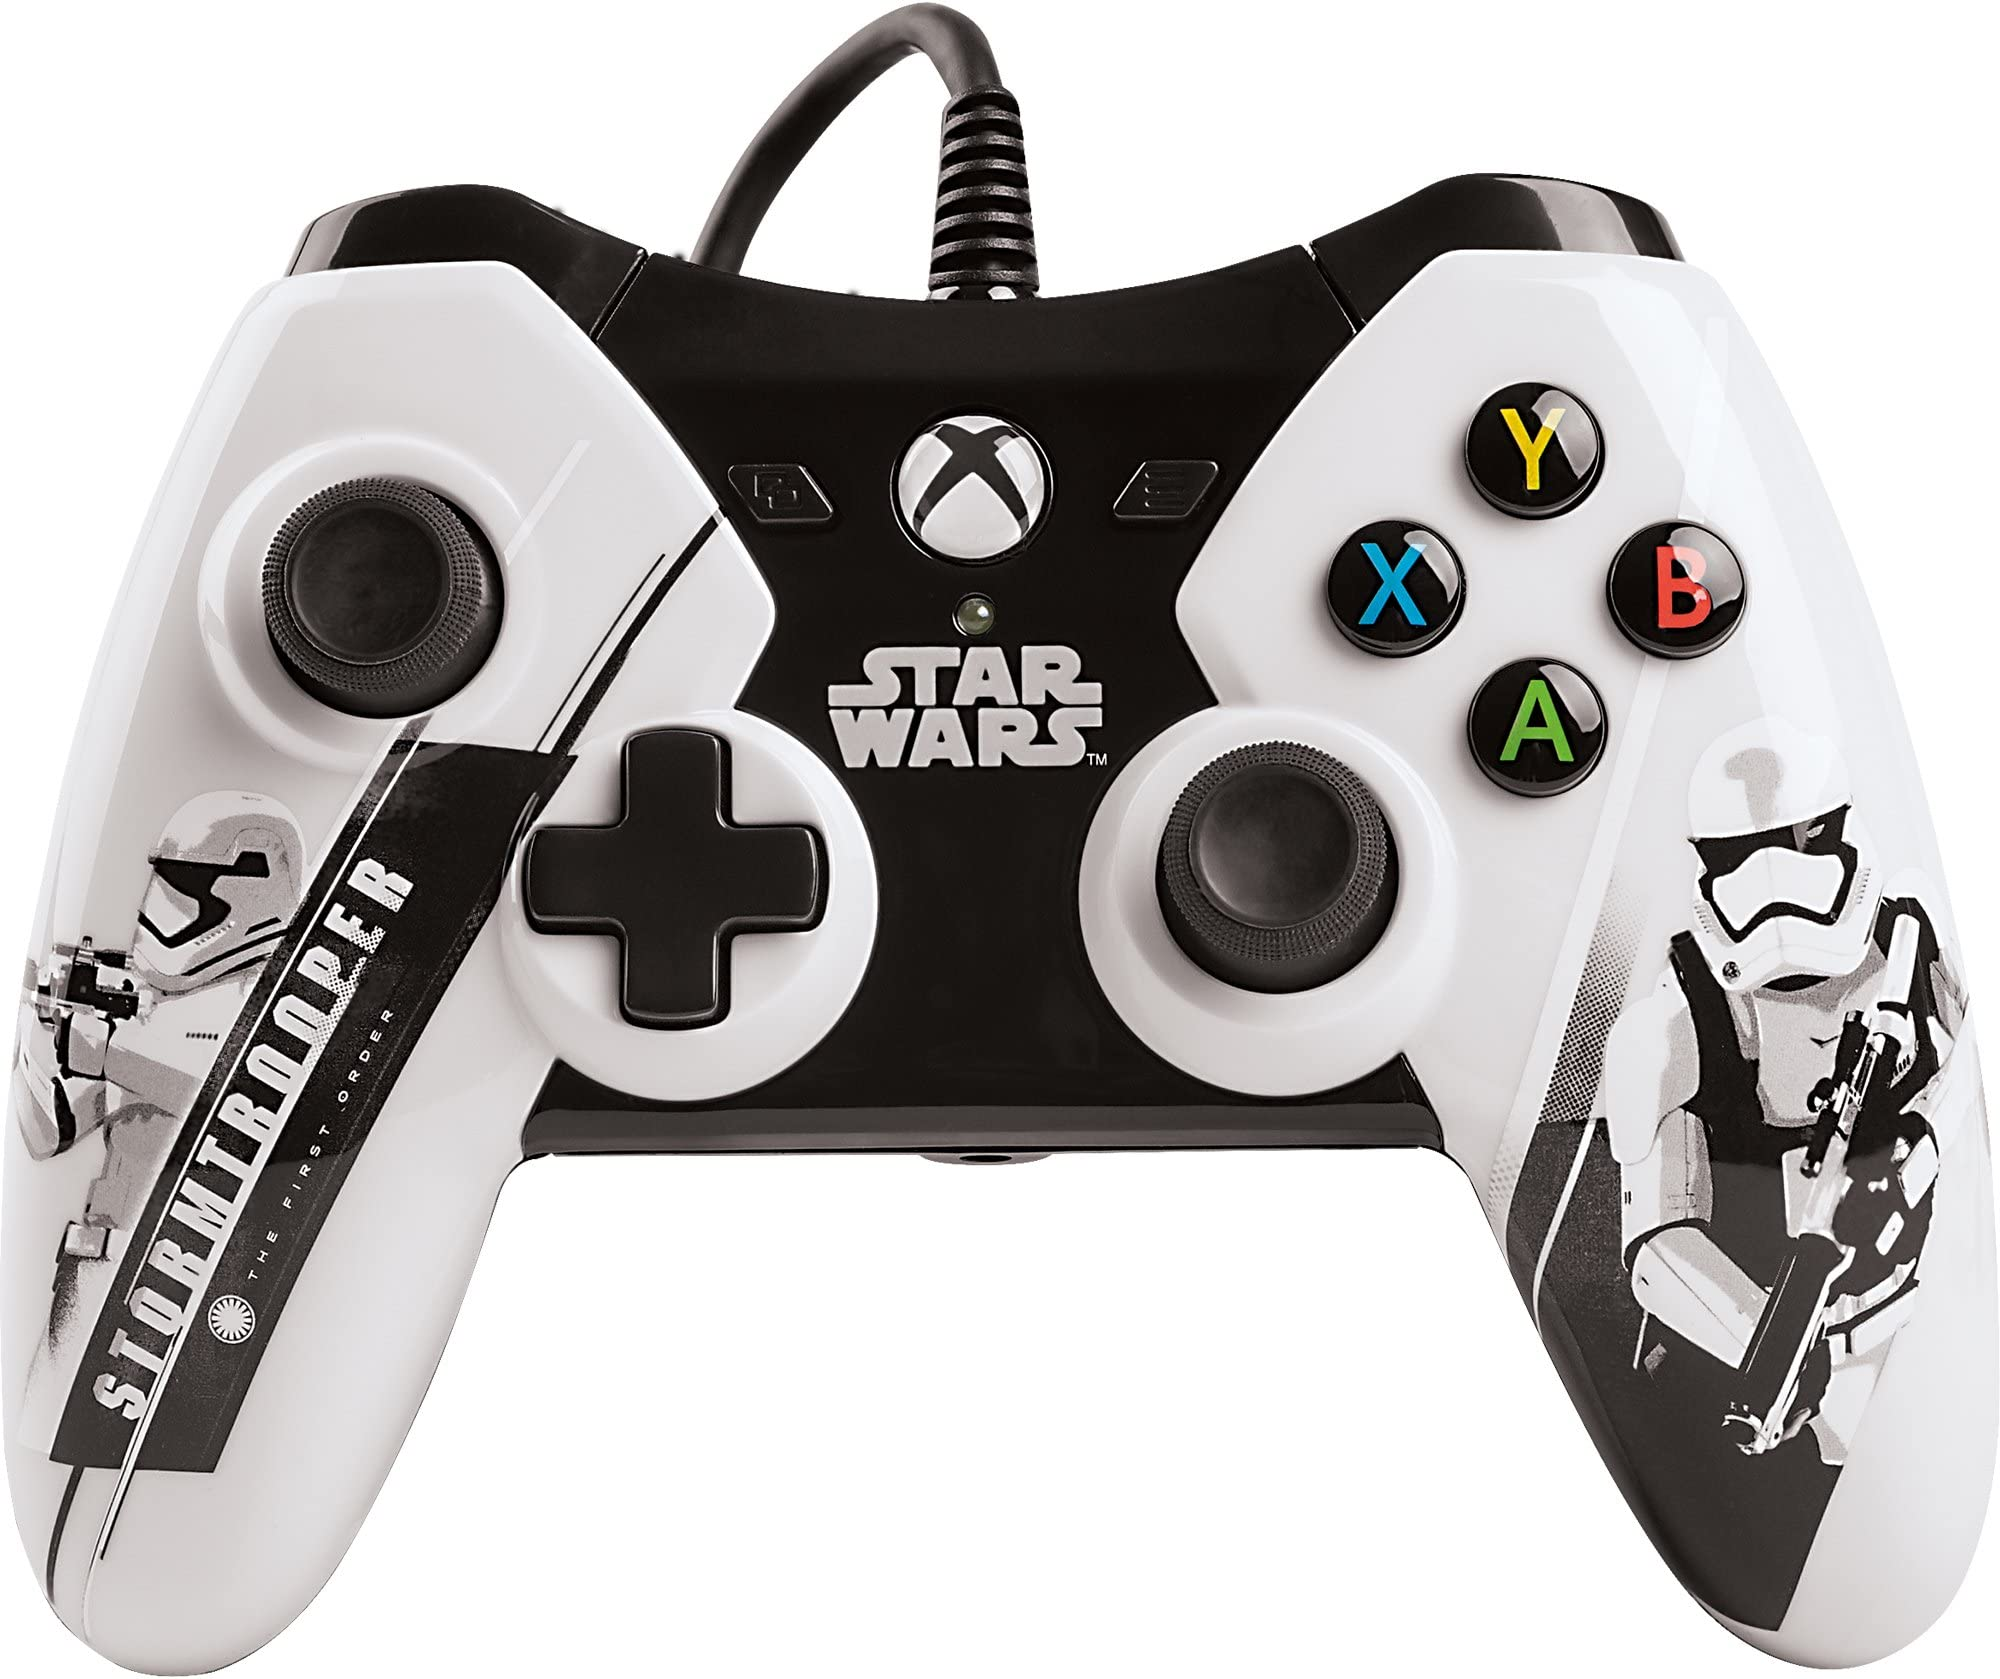 Amazon.com: POWER A Star Wars The Force Awakens - Stormtrooper ...